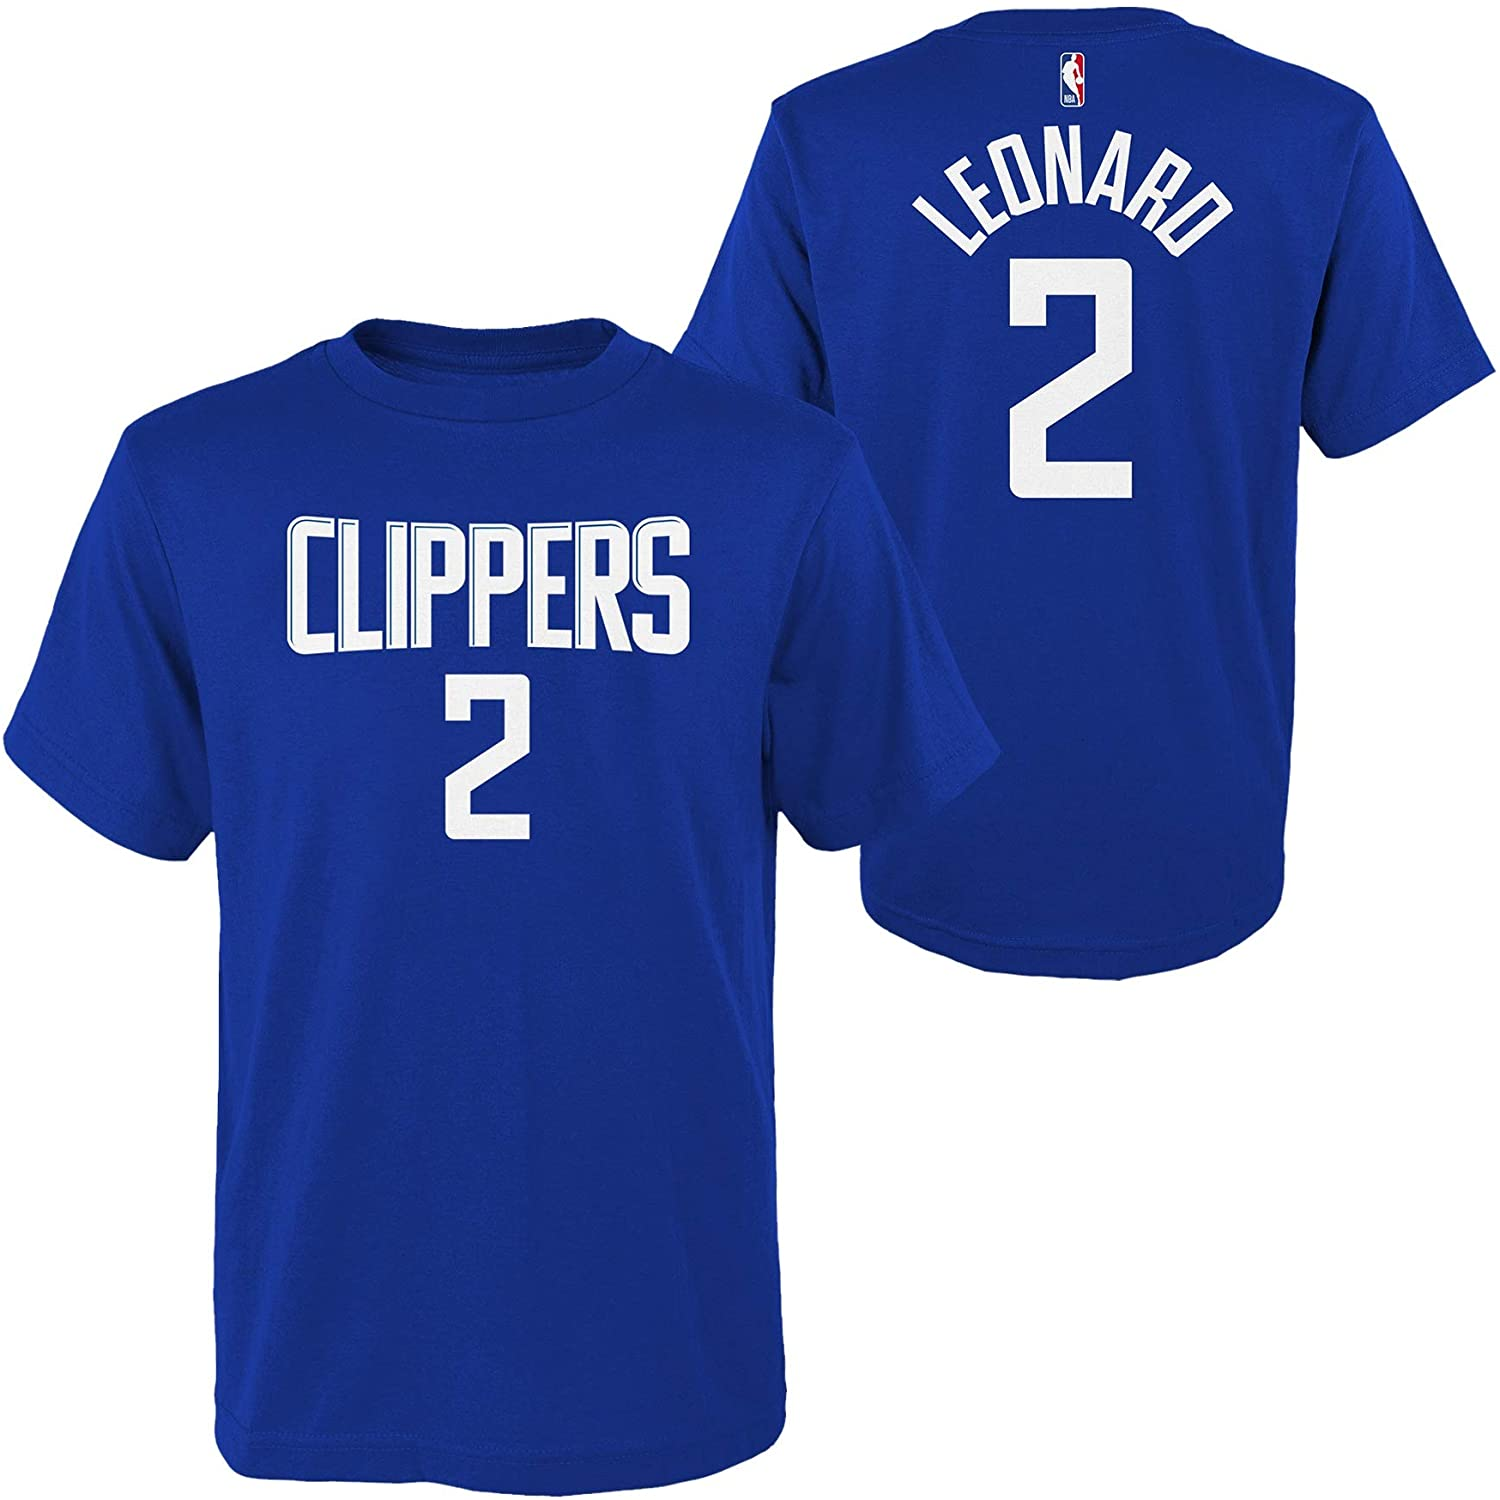 OuterStuff Kawhi Leonard Los Angeles Clippers #2 Youth Player Name & Number T-Shirt Blue (Medium 10/12)